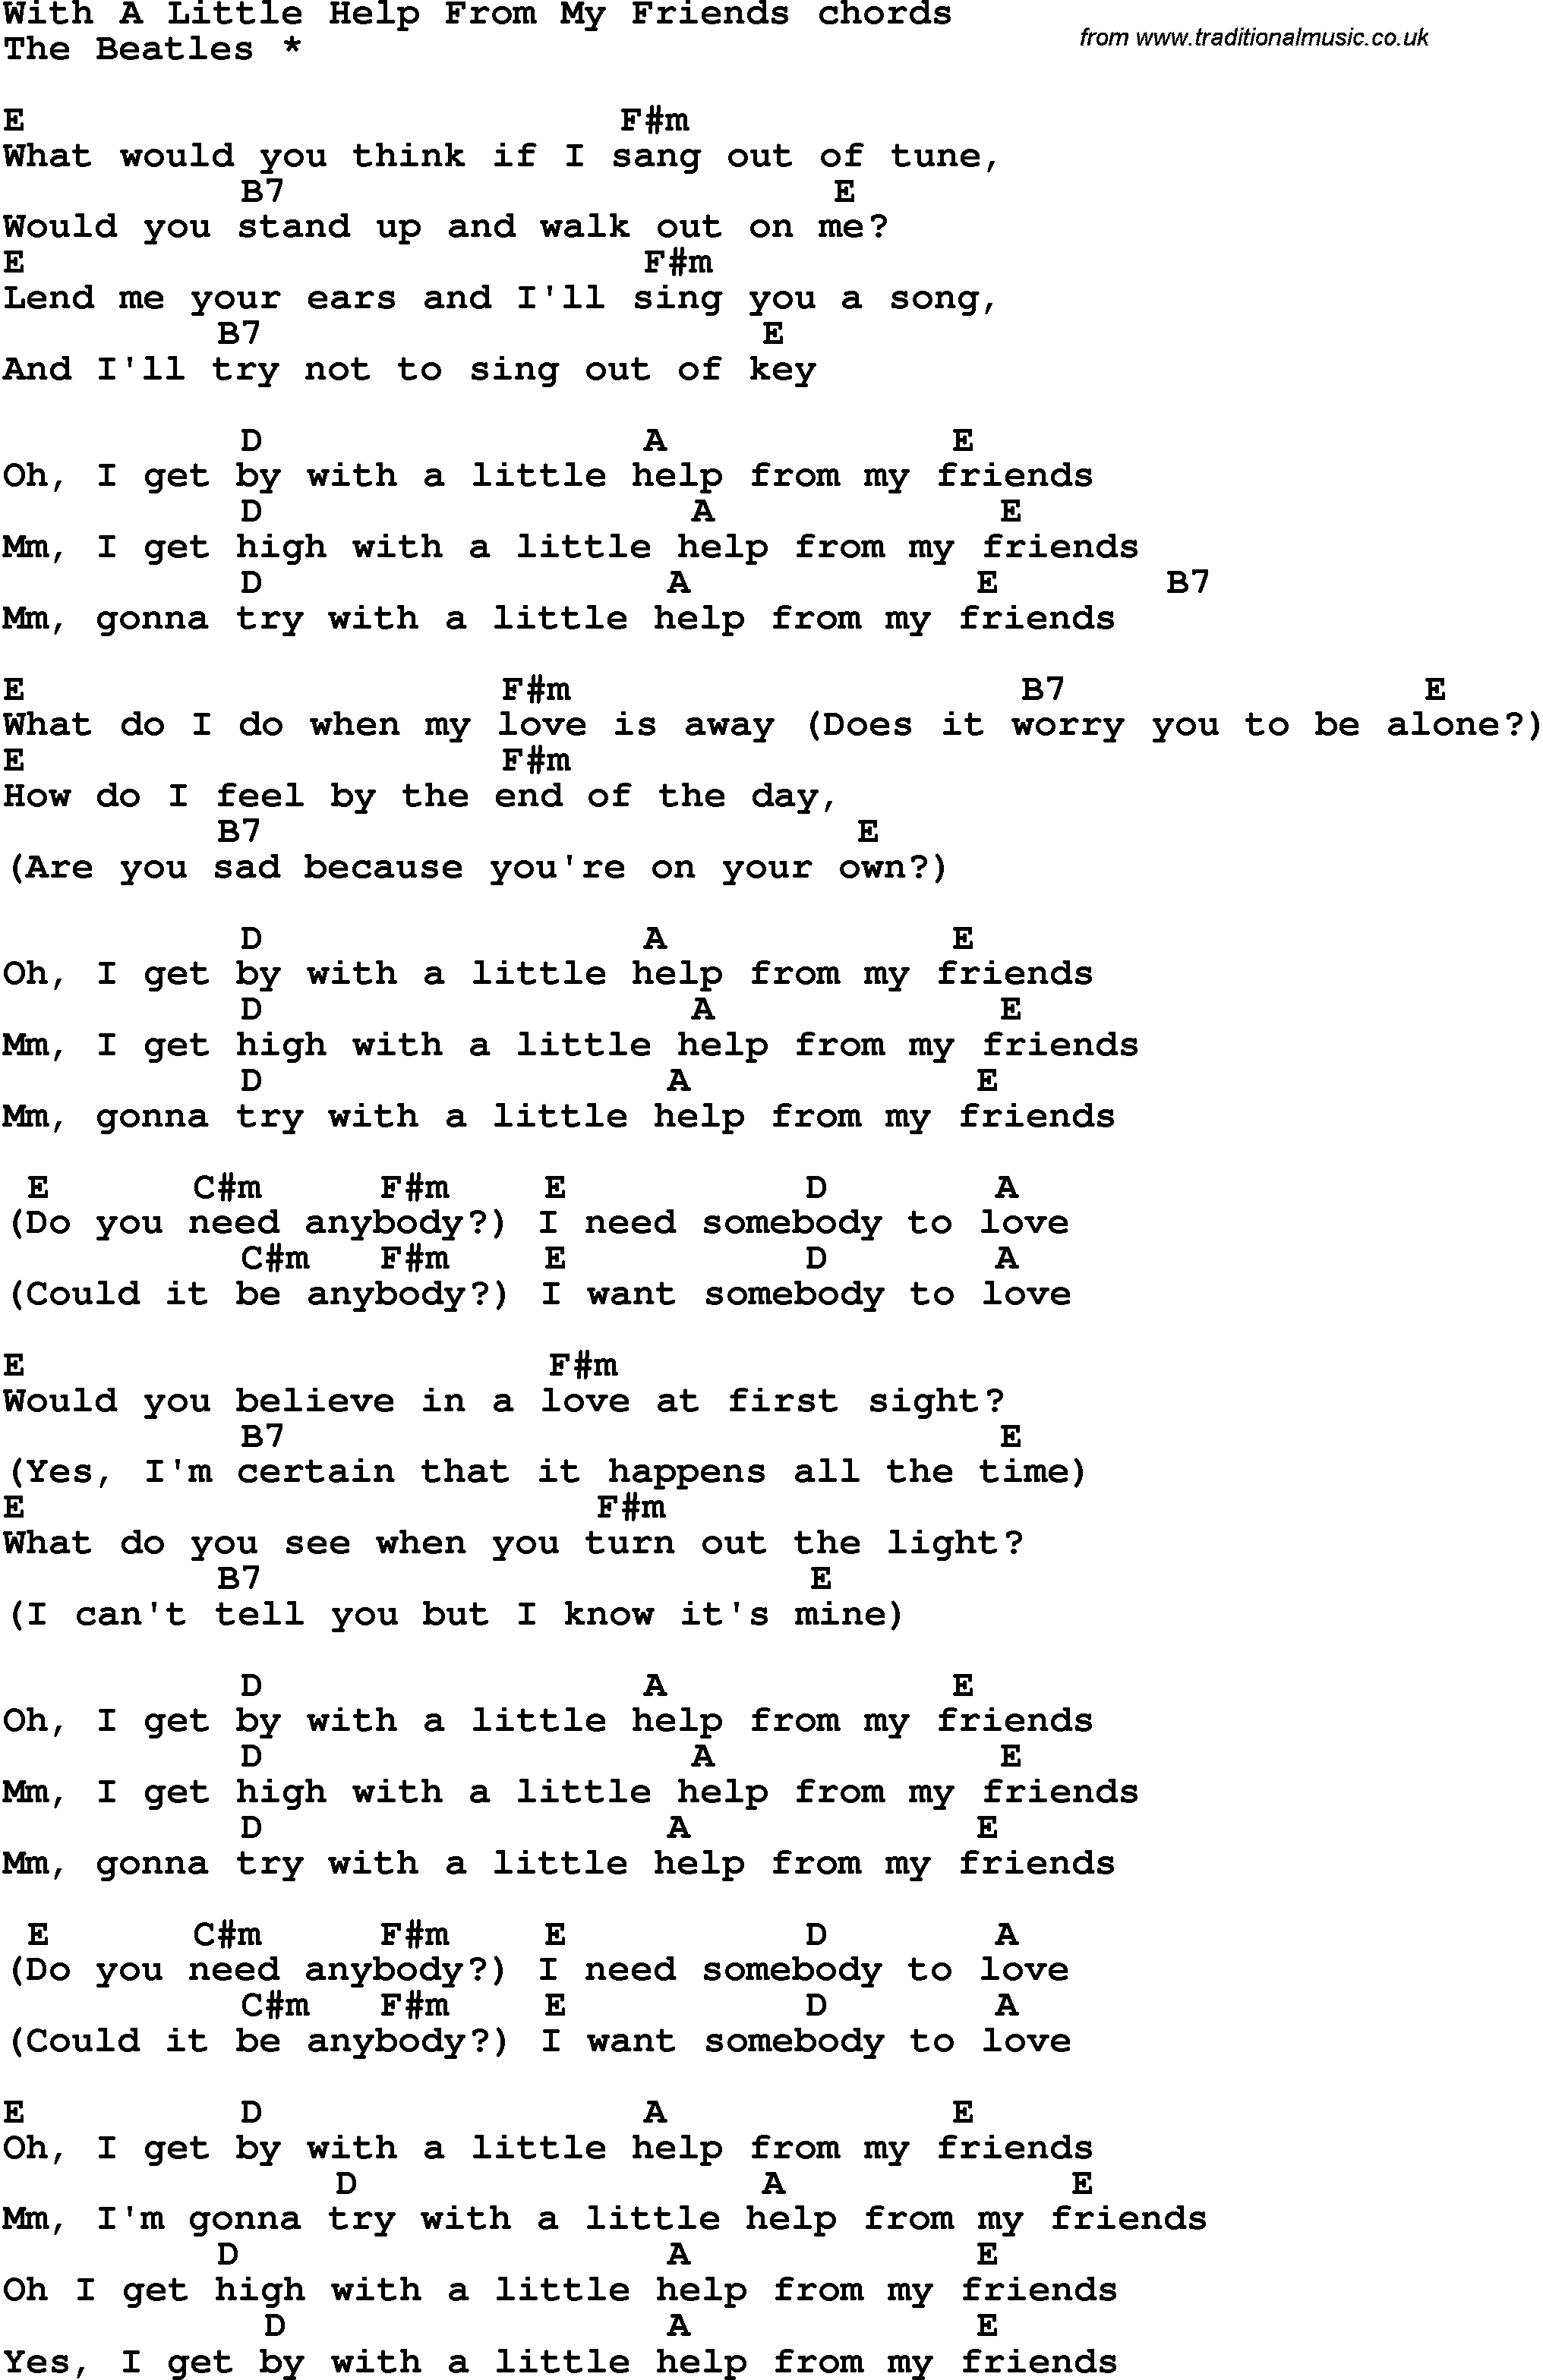 Song lyrics with guitar chords for with a little help from my song lyrics with guitar chords for with a little help from my friends hexwebz Images